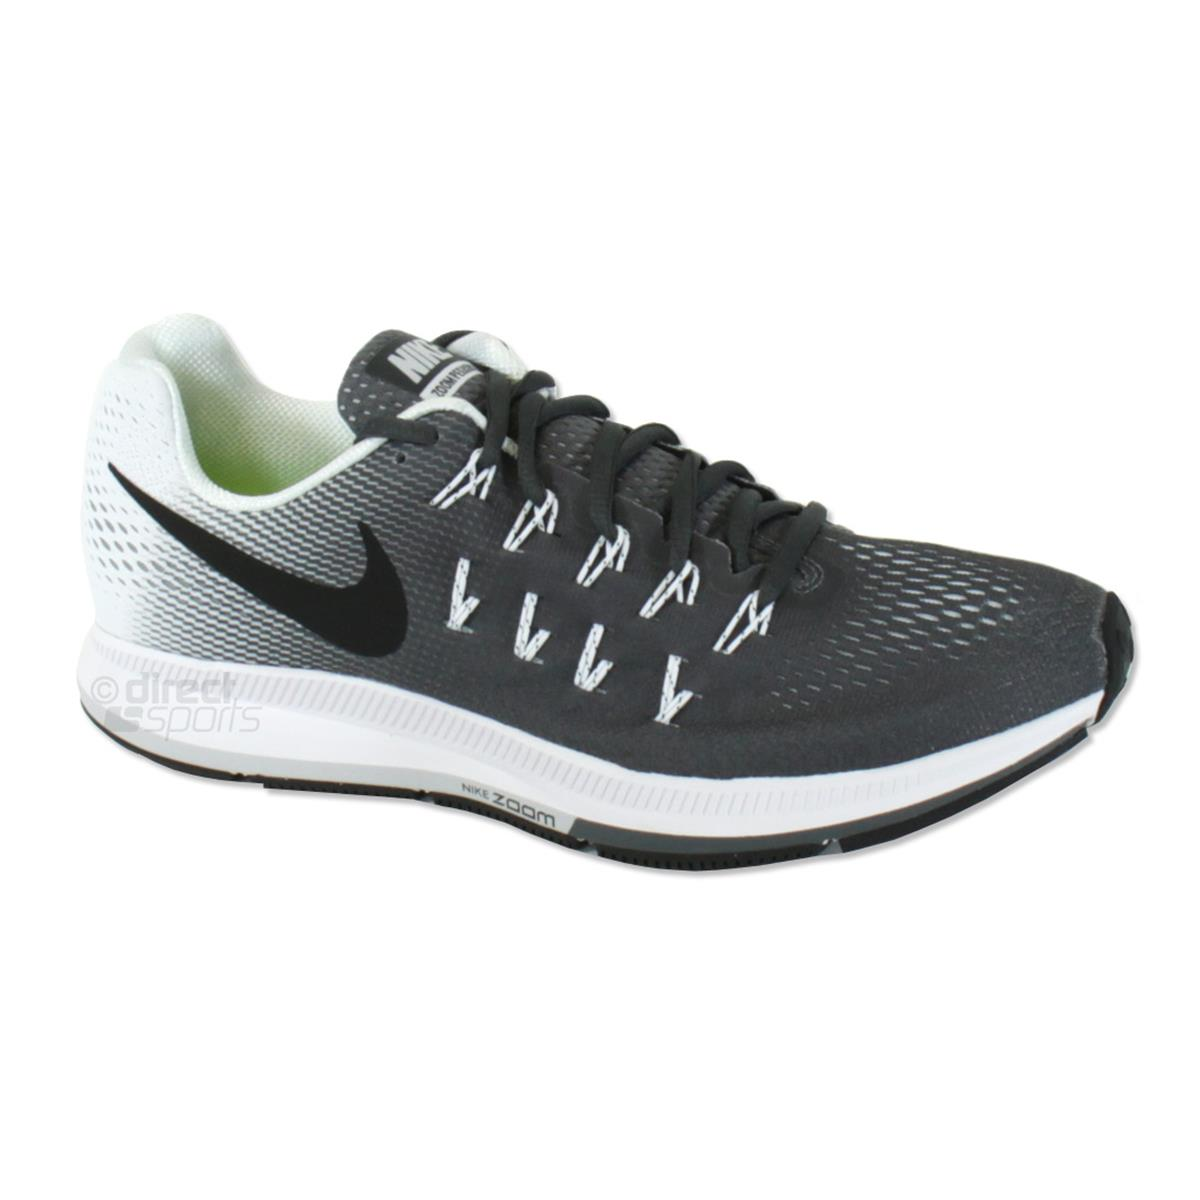 3a694cdaafc57 Nike Air Zoom Pegasus 33 Mens Running Shoes (Grey ...